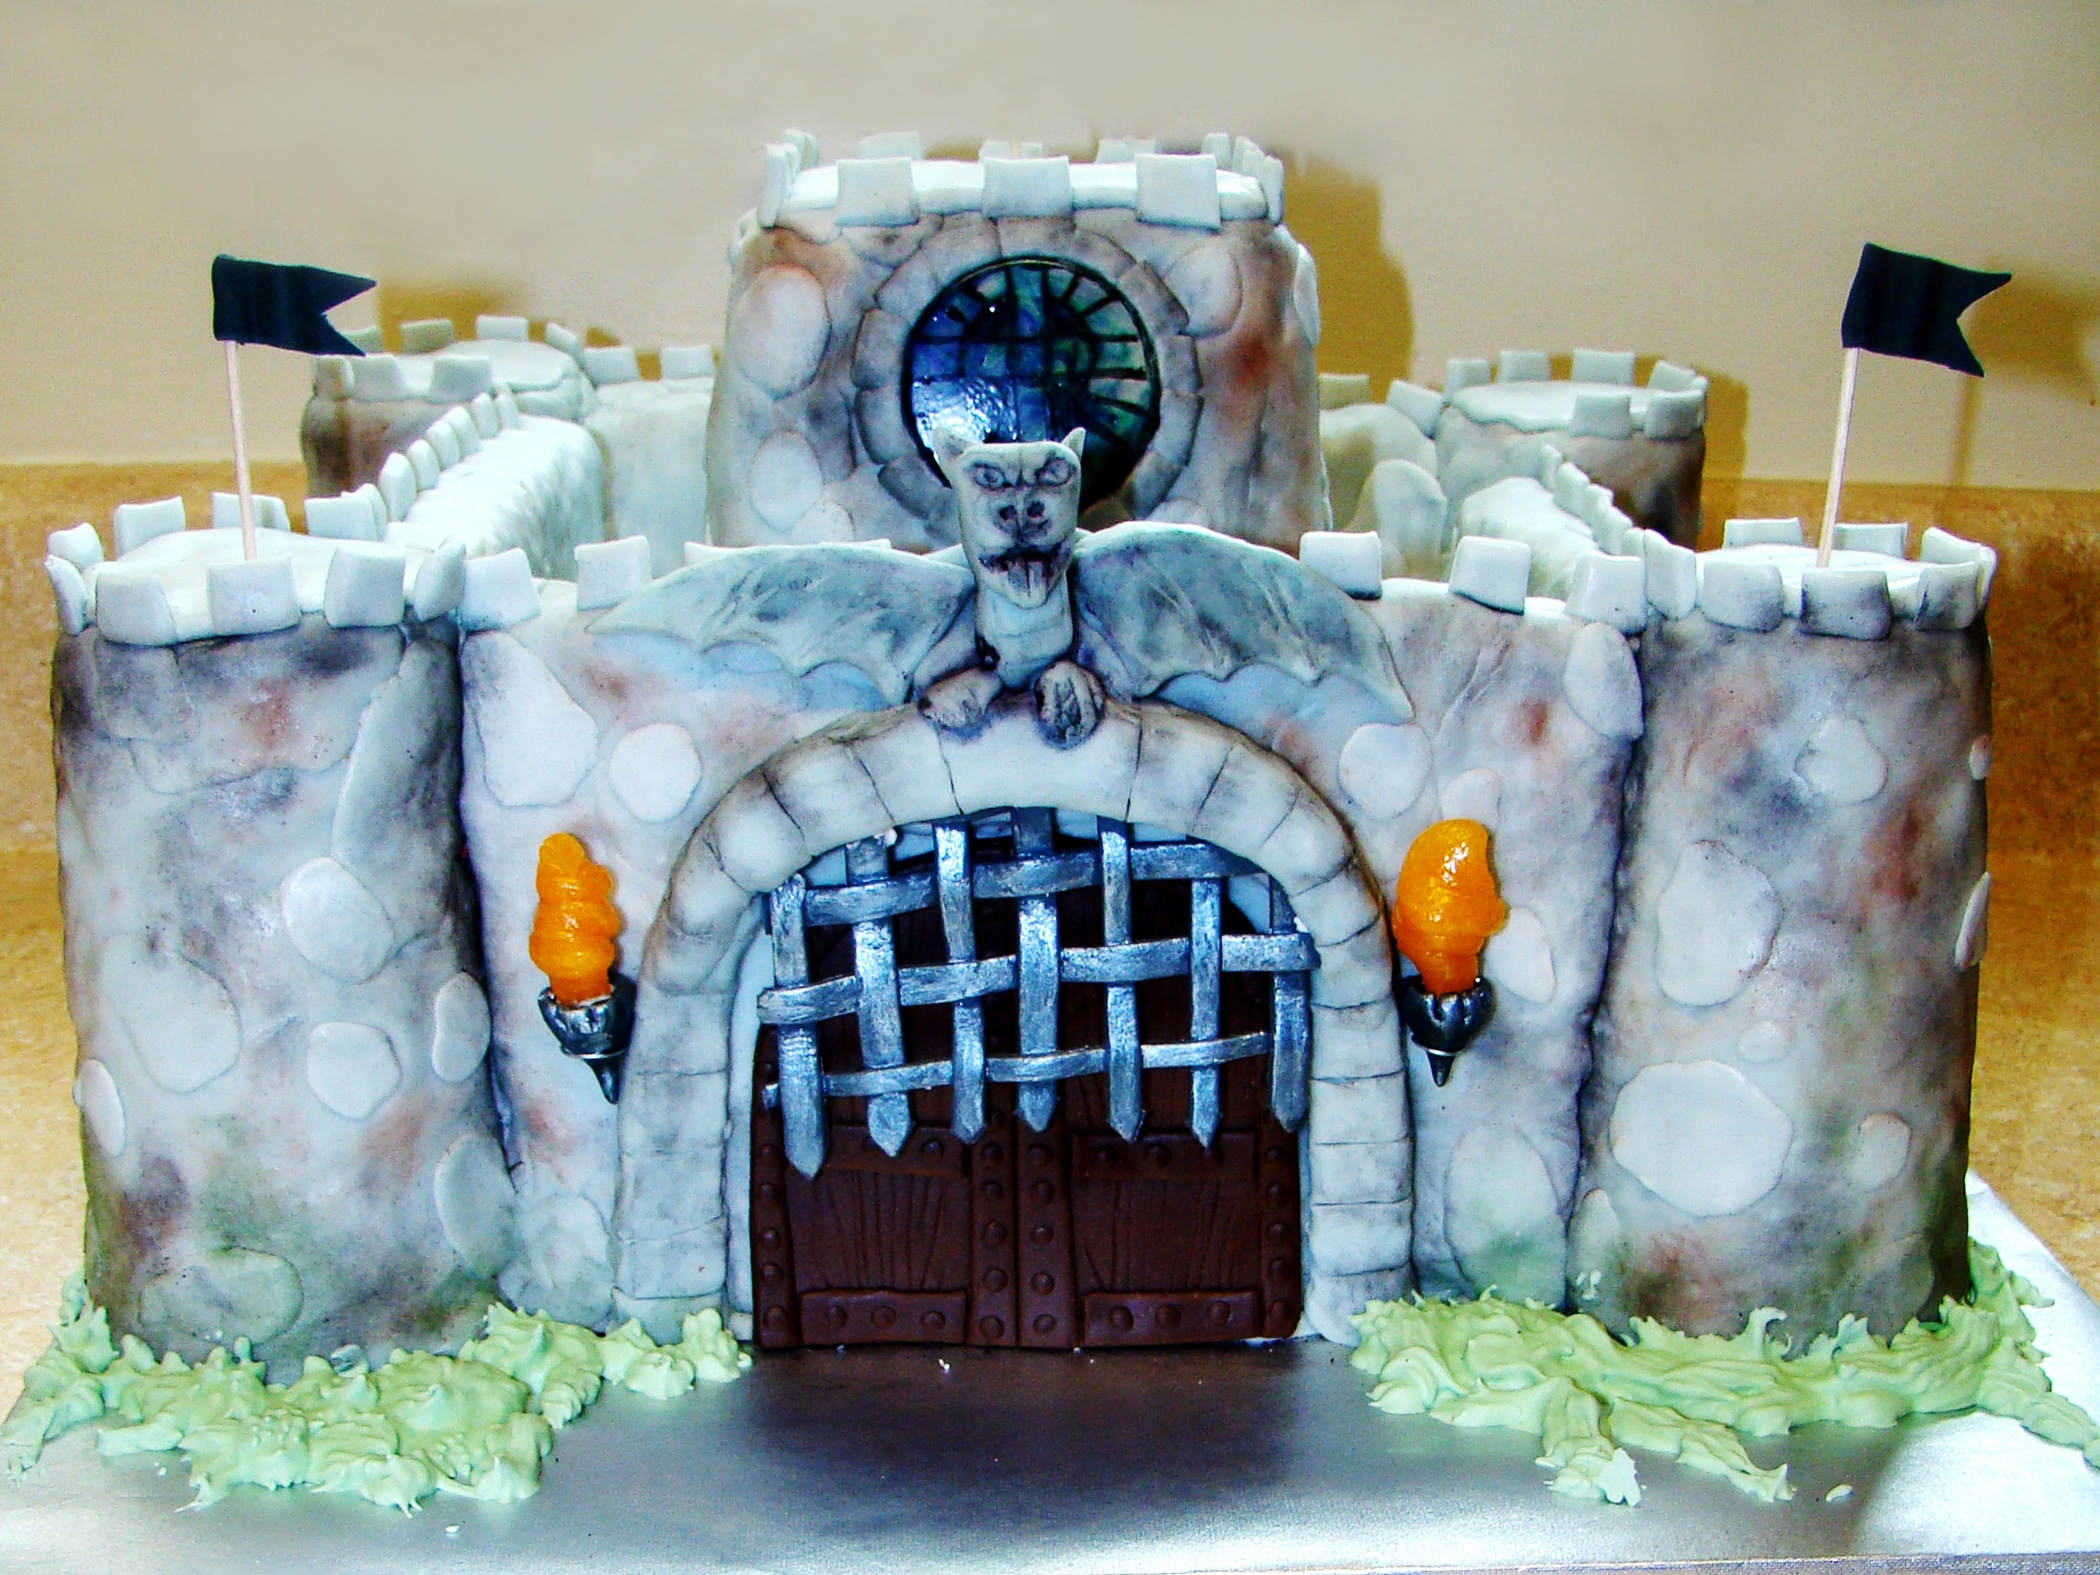 Castle cake insides were vanilla bean cake with vanilla bean buttercream. The outside walls and towers are fruity pebble rice crispy treats (request of the customer) and those were covered in frosting and fondant. The door is made out of modeling chocolate. The gate is made out of black gumpaste and painted with metallic paint to give it a shiny iron look. The gate accidentally got stuck on there crooked, but it kept falling otherwise. The gargoyal is made out of modeling chocolate. The torches are made out of gumpaste and the fire is made out of pulled sugar. The stained glass windows are made out of melted sugar that were poured into molds and food colors were painted on the back to give it that look of being stained glass. It took a lot of trial and error, but finally have a decent method for those. 